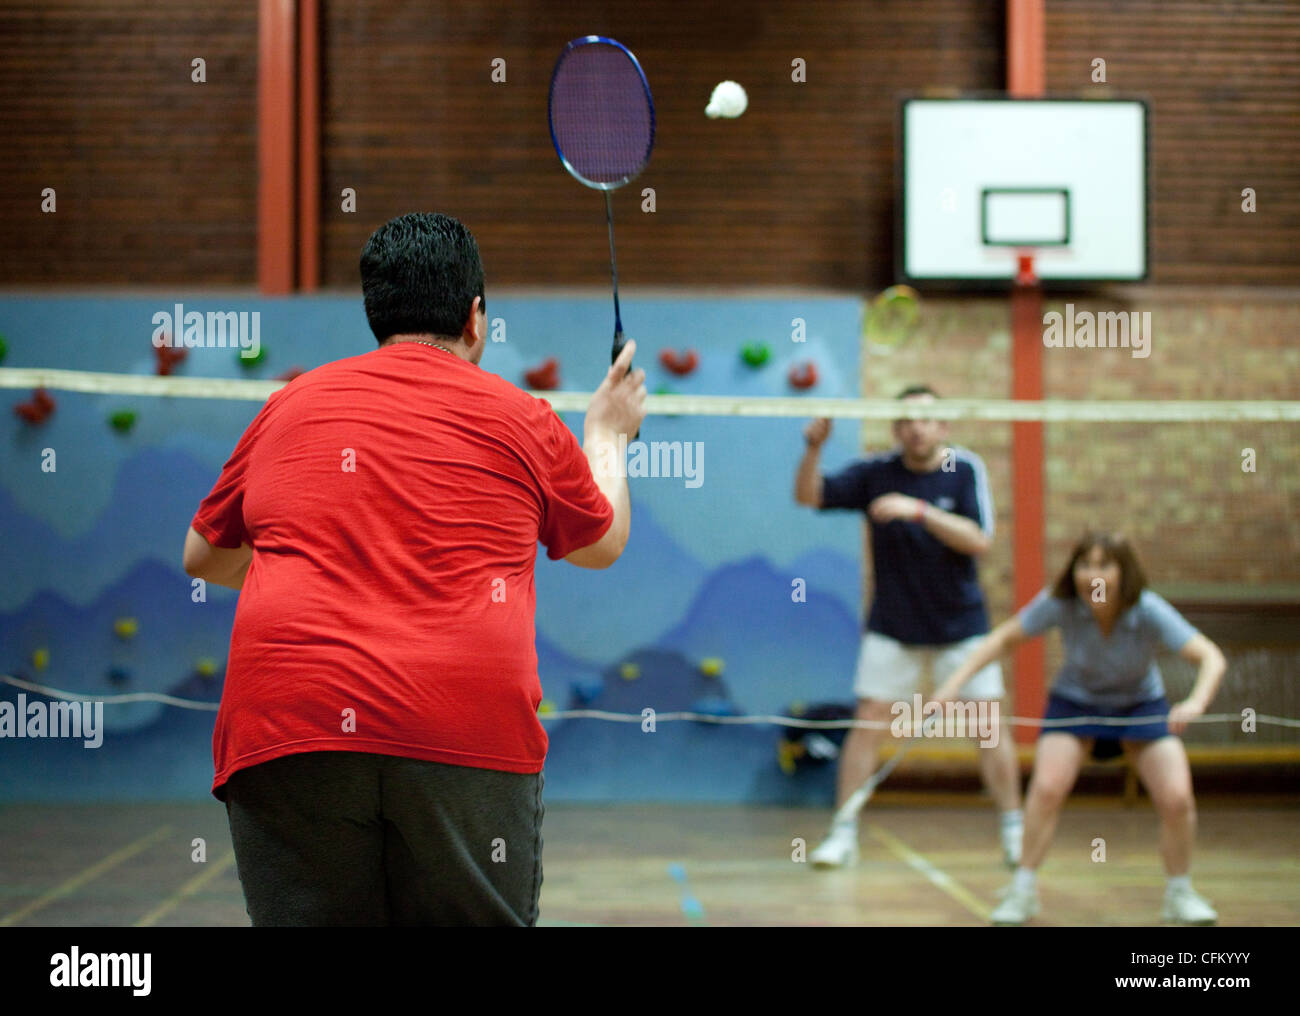 An overweight man playing badminton for exercise, UK - Stock Image